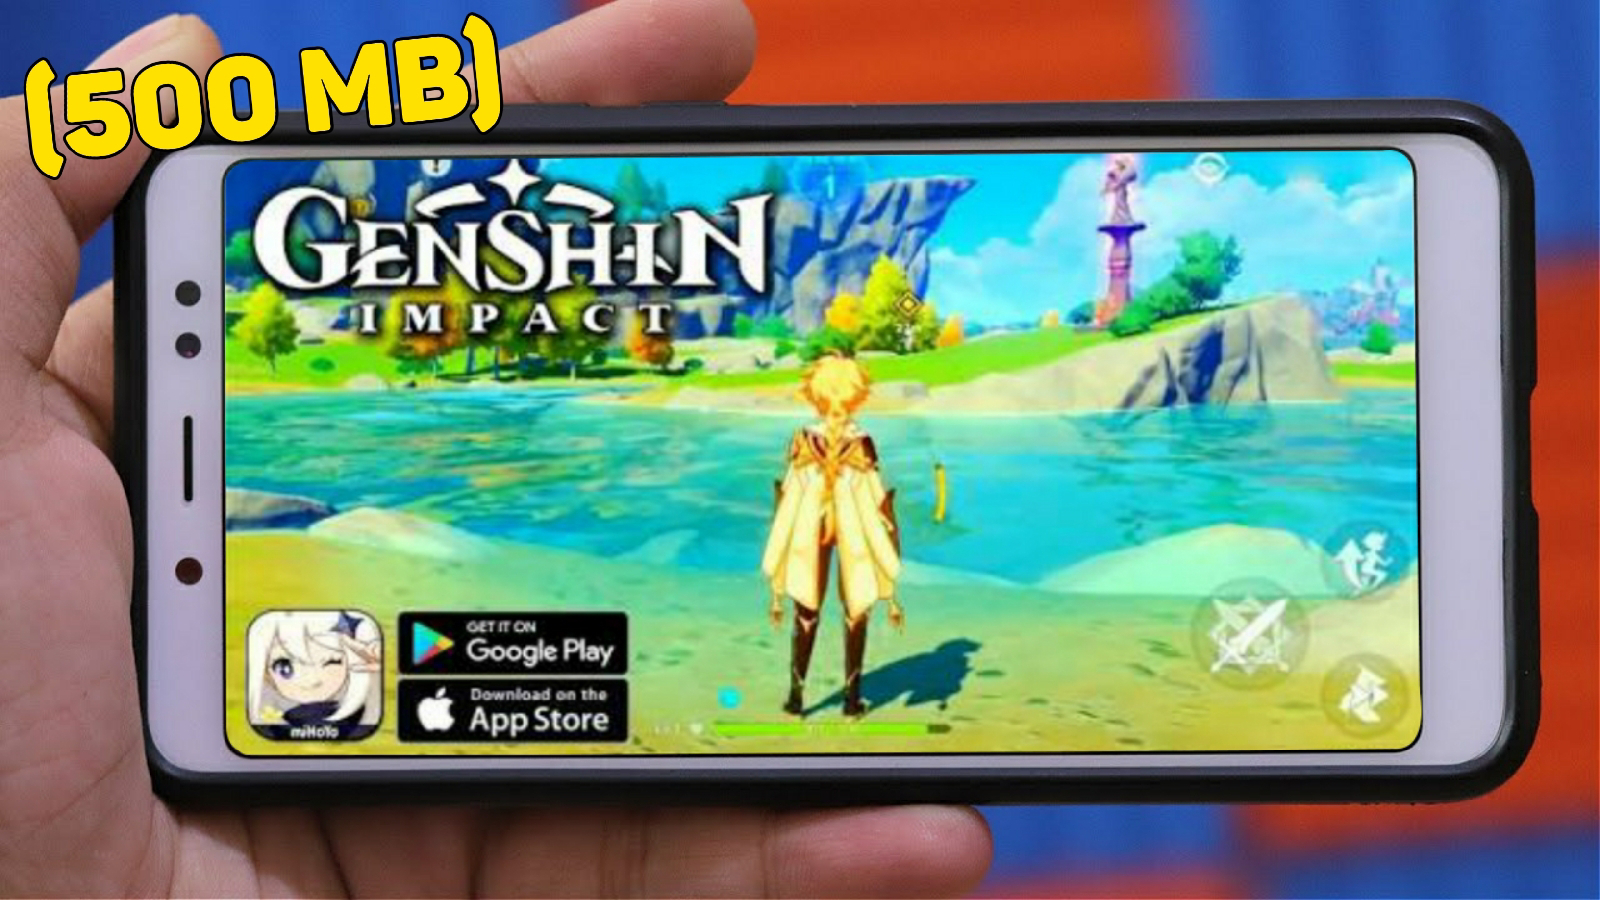 genshin impact highly compressed apk